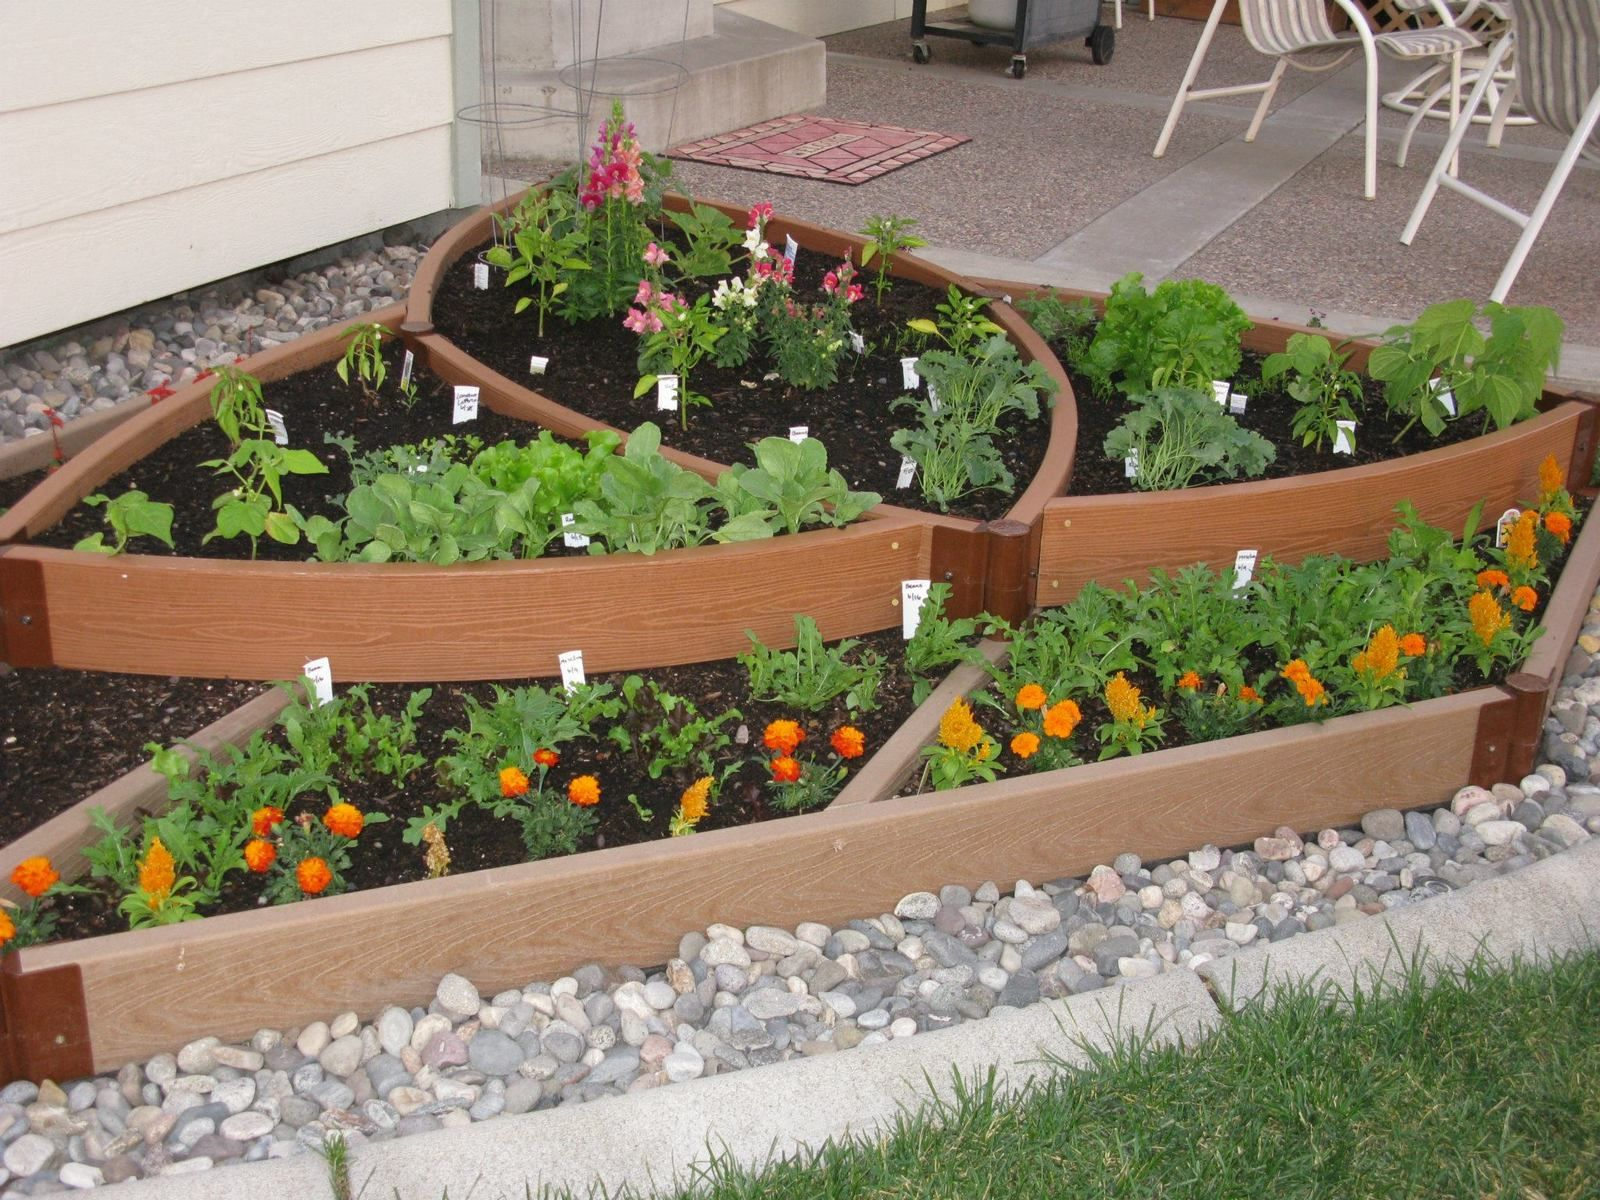 Vegetable Garden Design Ideas Garden Exterior Diy Raised Vegetable Garden  Beds Materials For Building Raised Garden Materials A Wooden Raised Garden  Bed ...